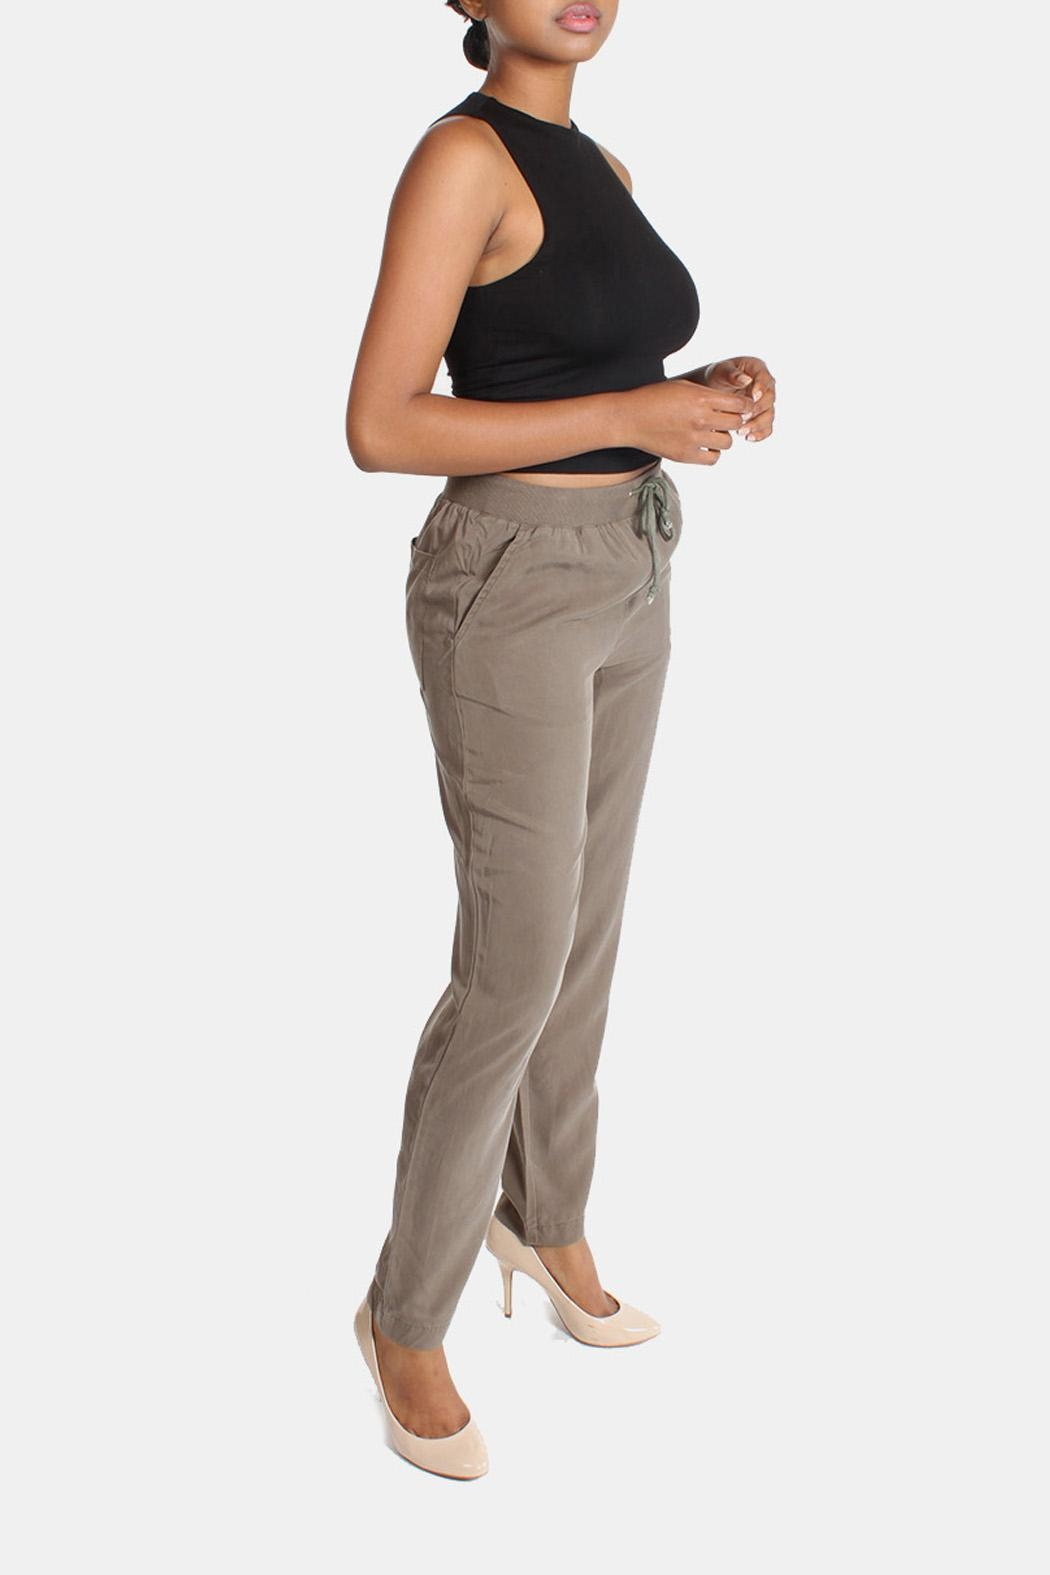 Illa Illa Olive Drawstring Pants - Side Cropped Image